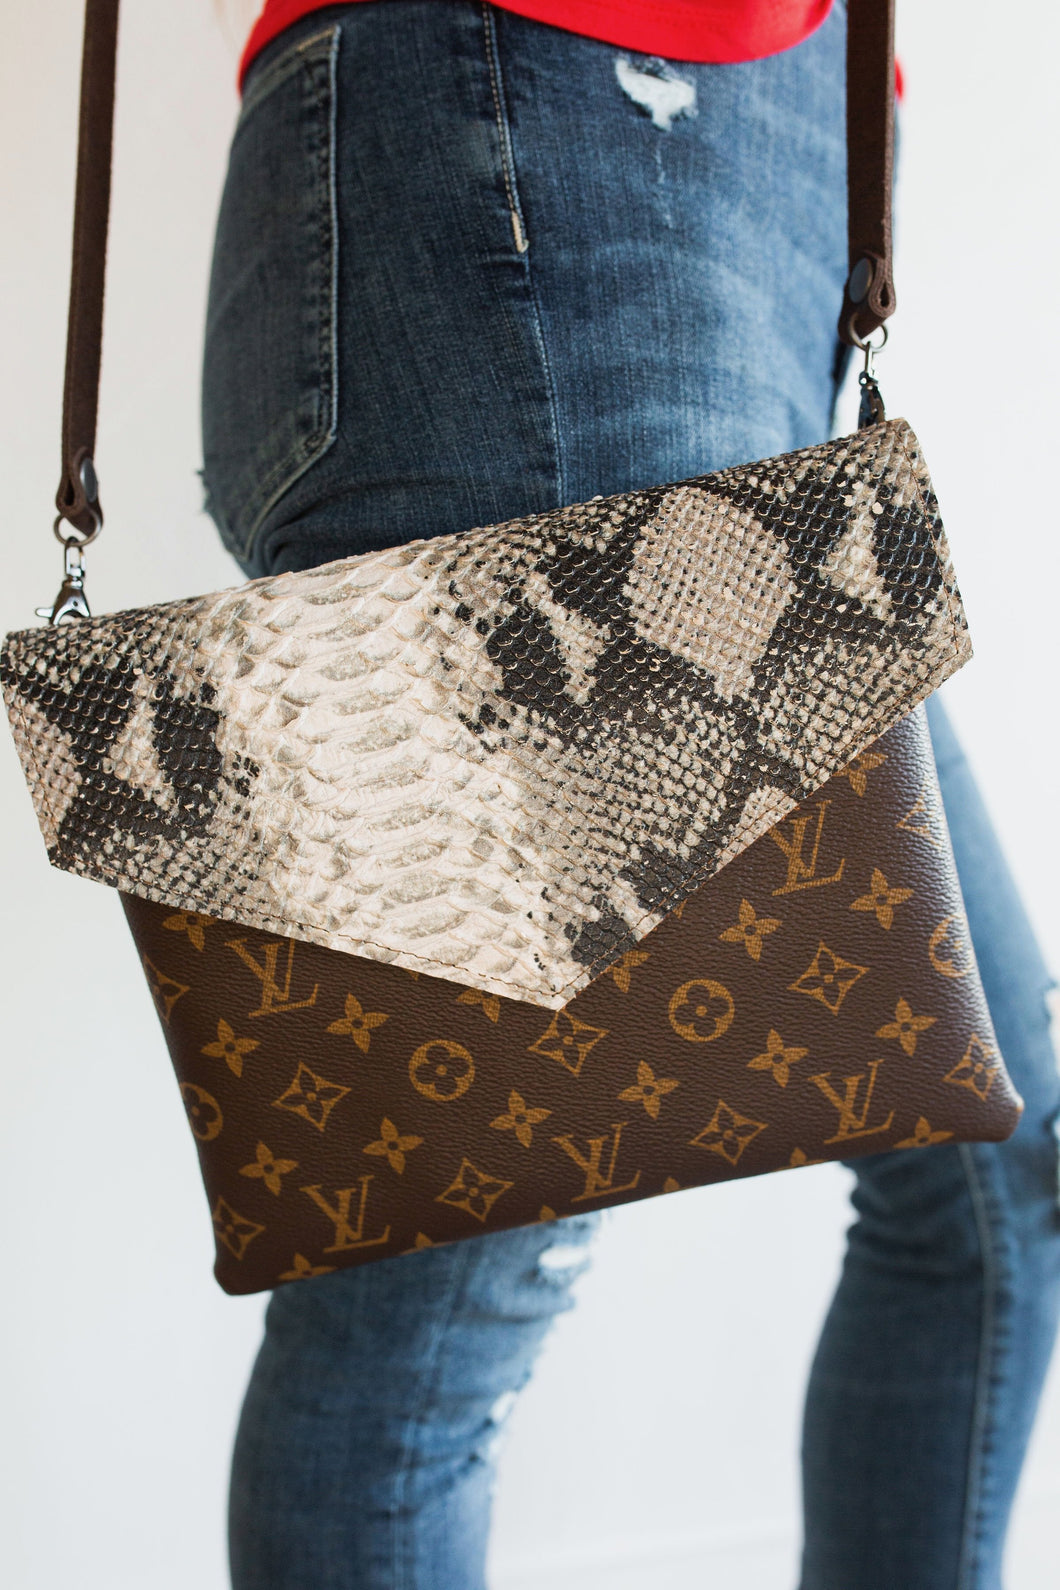 Alexa Upcycled LV & Leather Python Crossbody